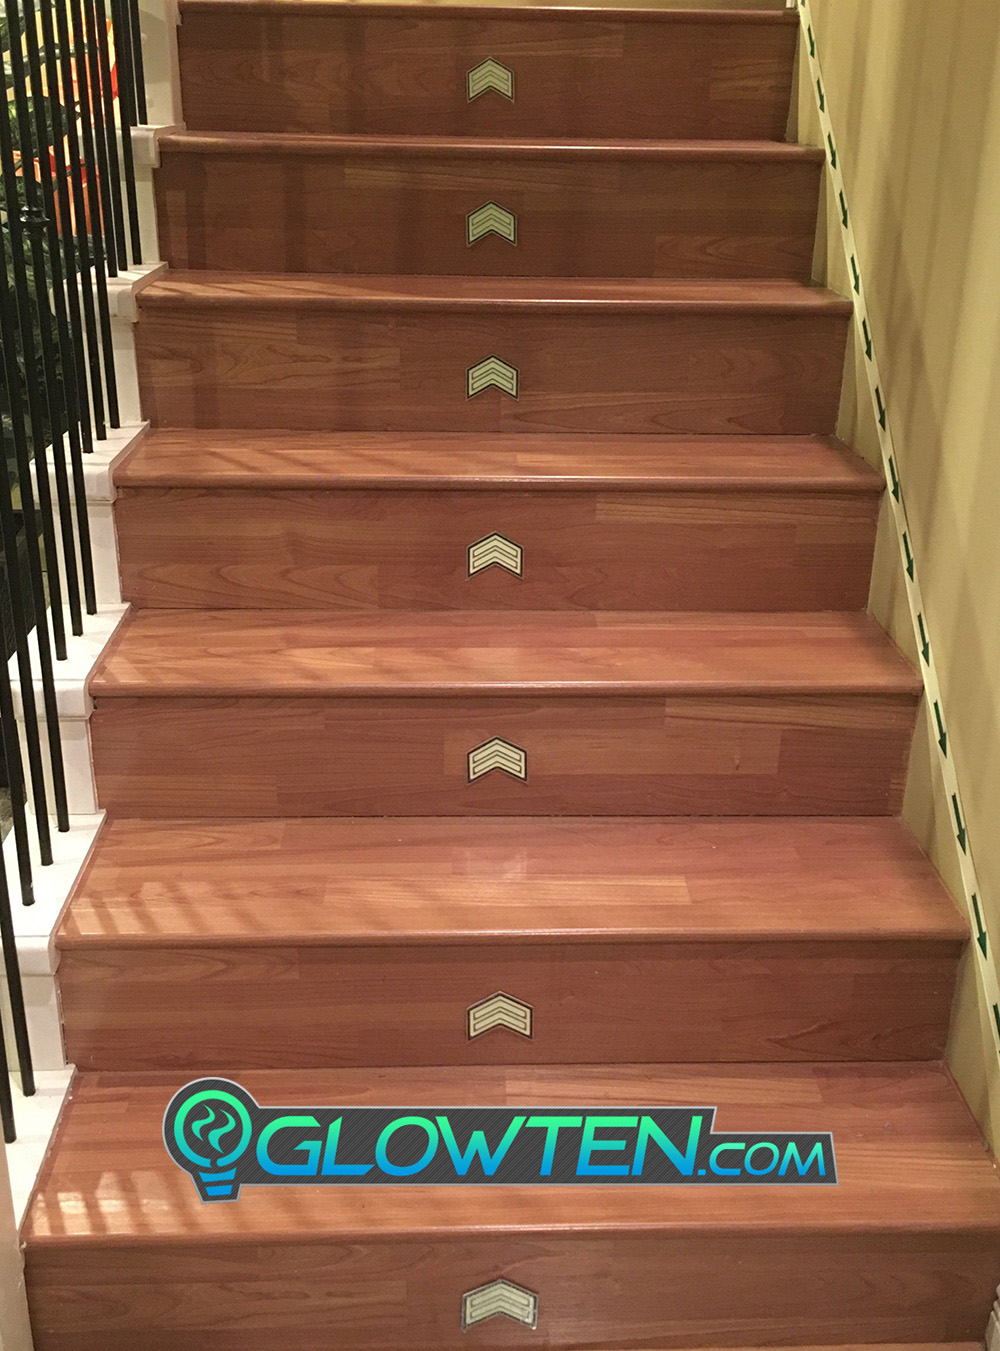 GLOWTEN.com - DOUBLE ARROWS Glow in the Dark Stairs Guide Directional Safety See Clearly At Night Metal Badge Sign light exposure picture photo cap preview pic 7